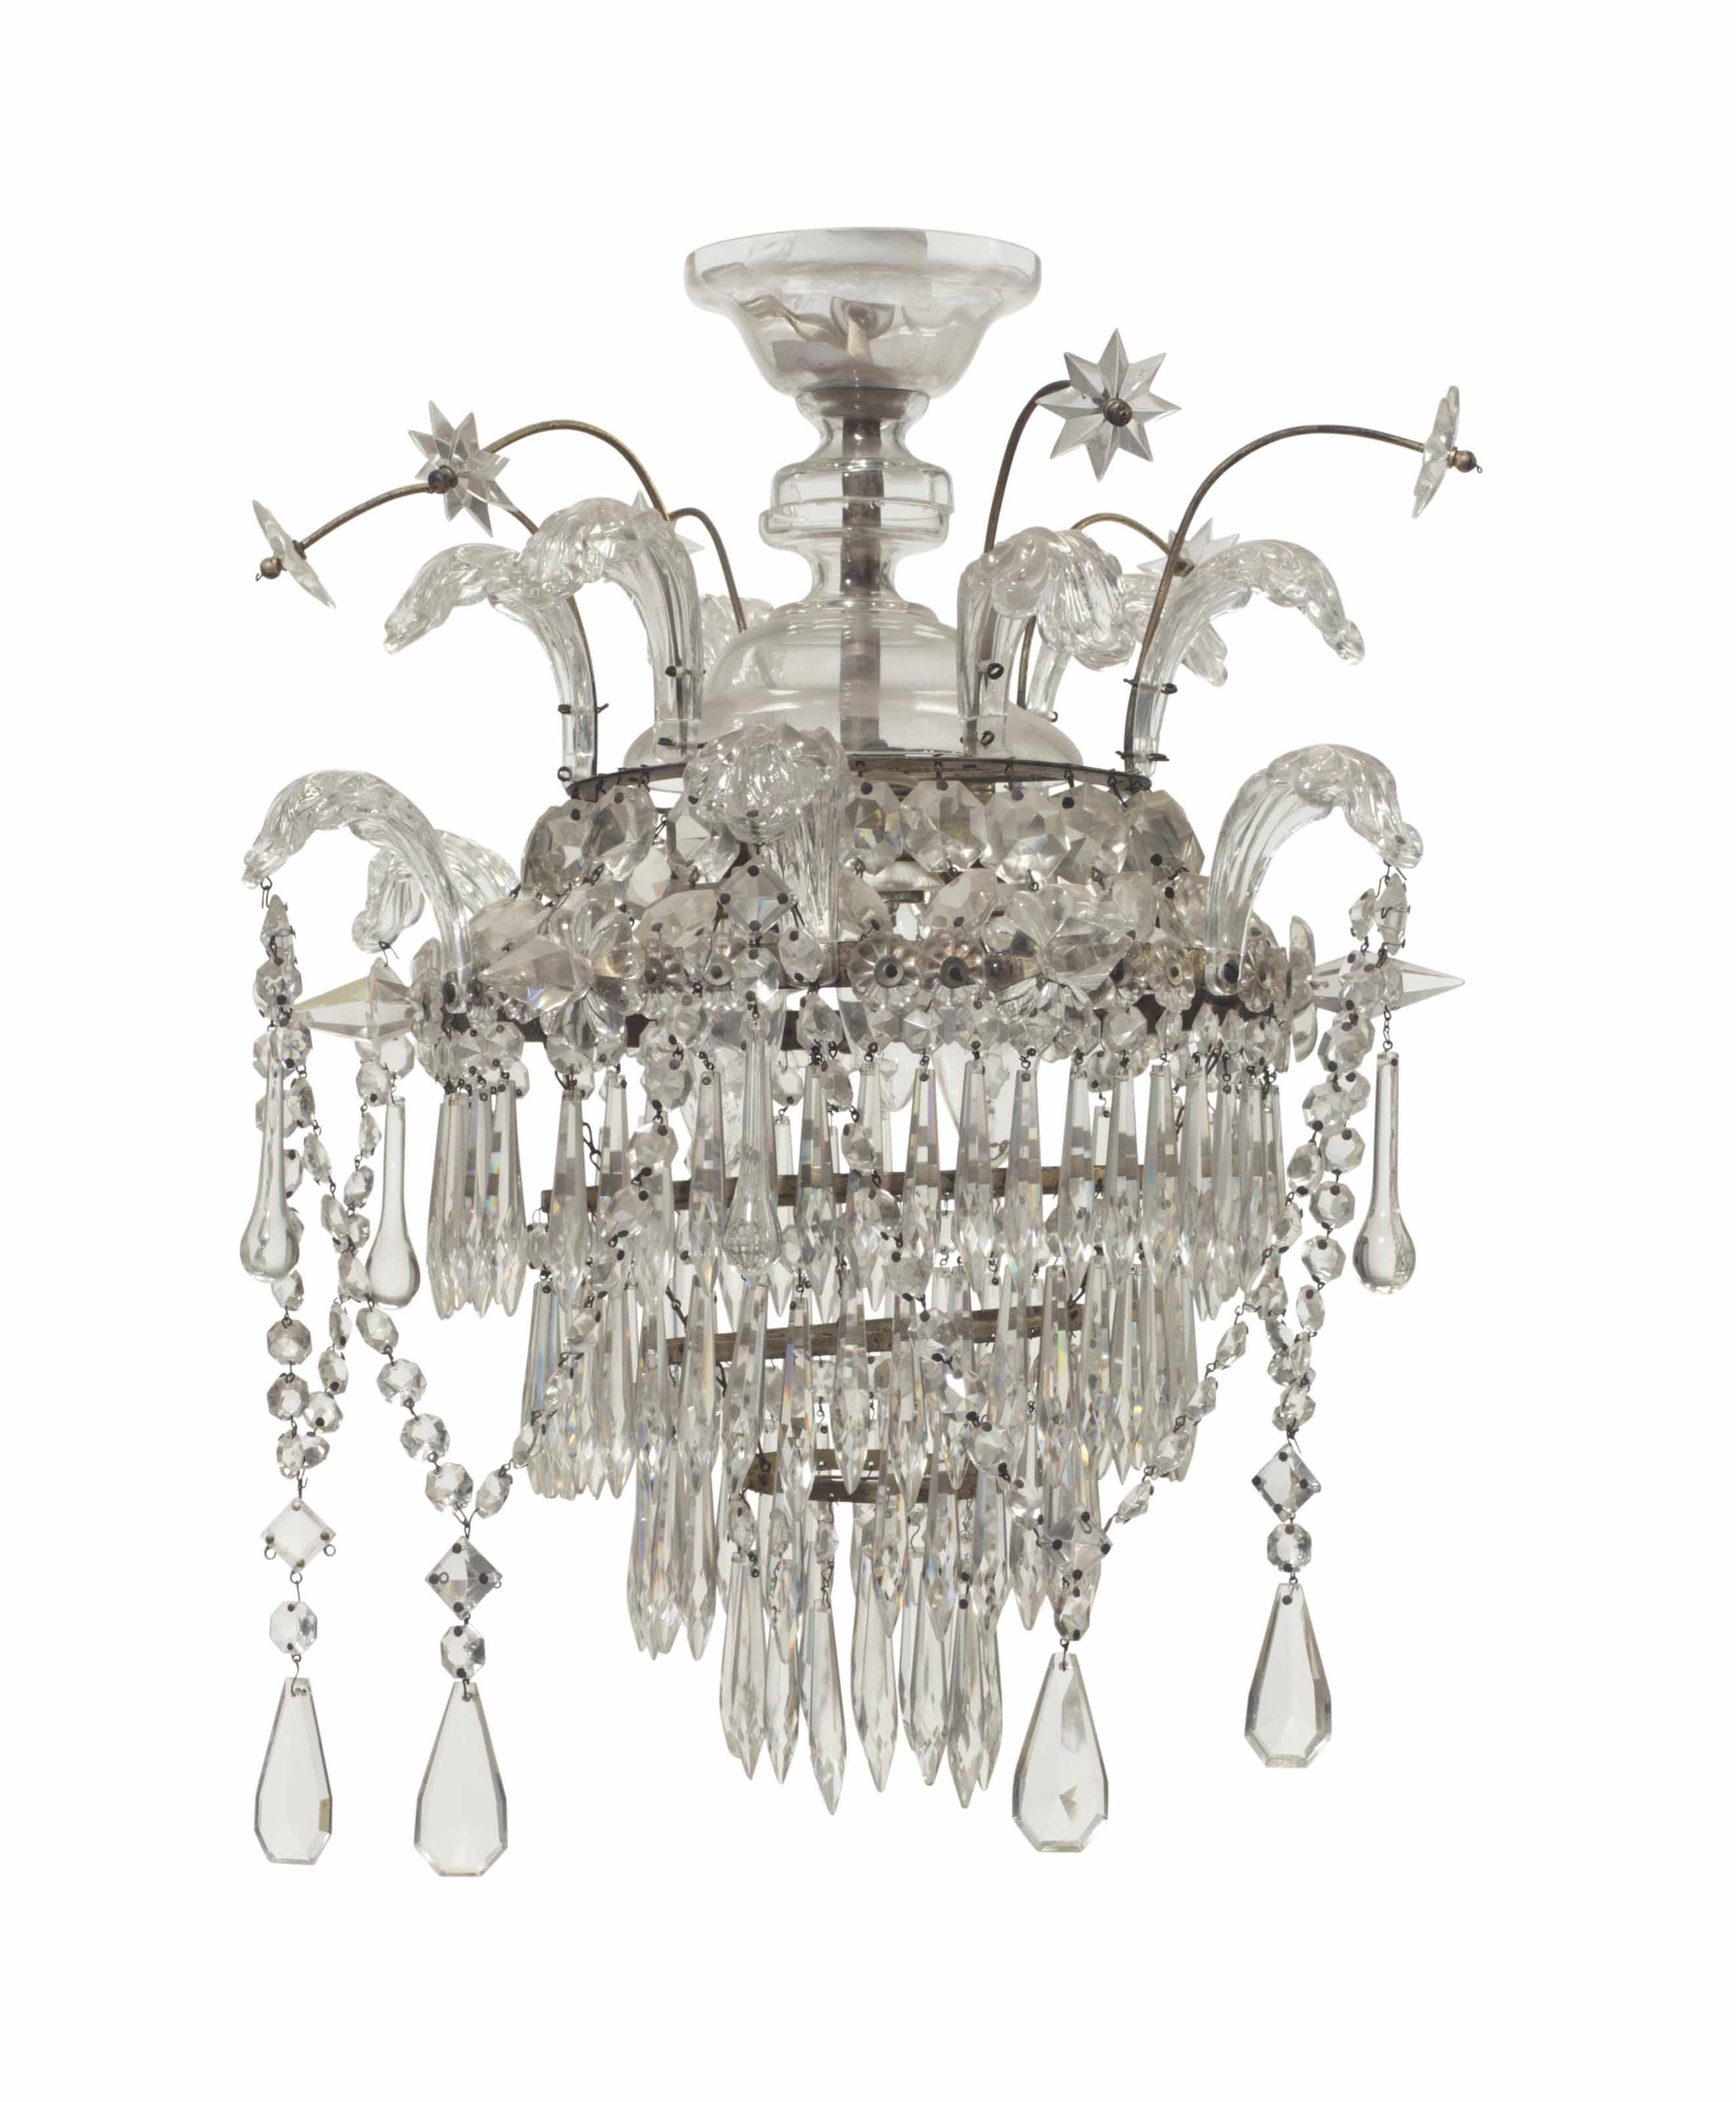 A CUT AND BEADED GLASS CHANDEL